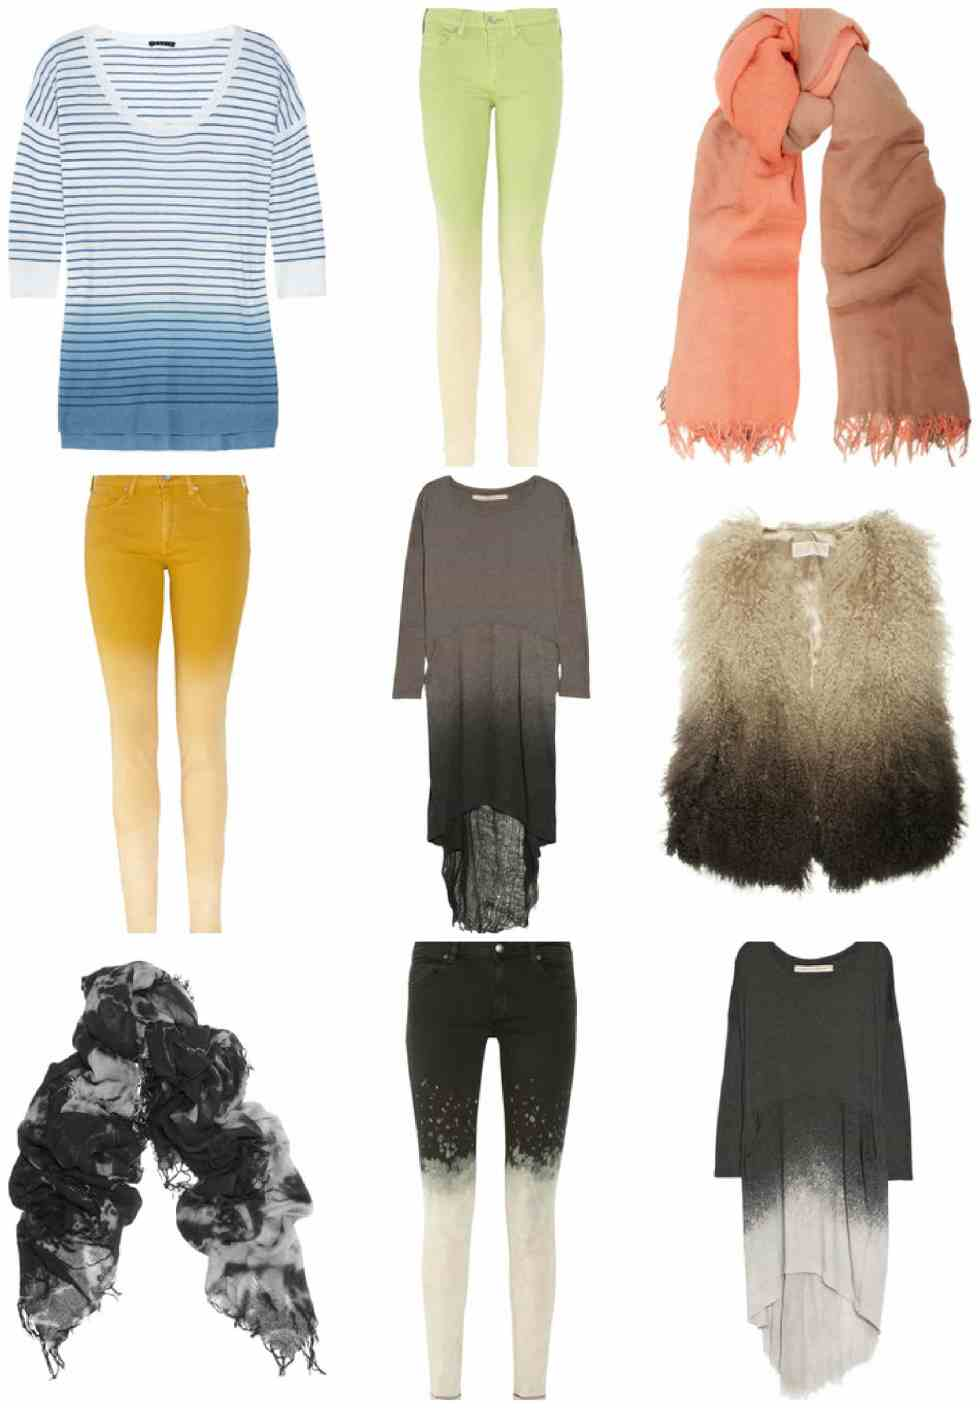 SHOP NET-A-PORTER'S DIP DYED